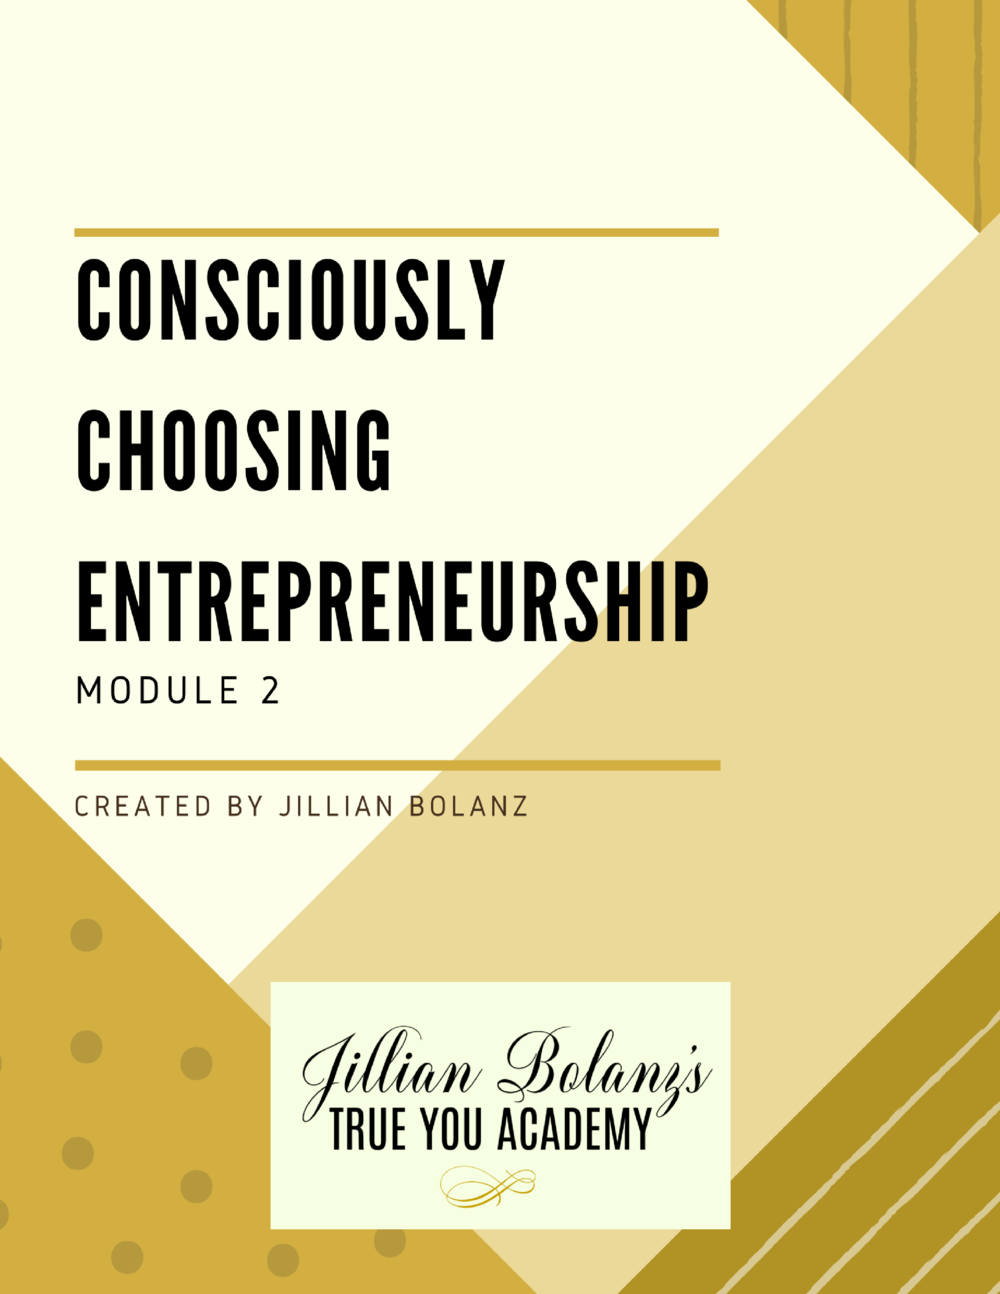 Here we will guide you into understanding why you want what you want We will help you choose your entrepreneurial career (rather than accidentally fall into it) You will learn to let curiosity and joy guide you to tangible results